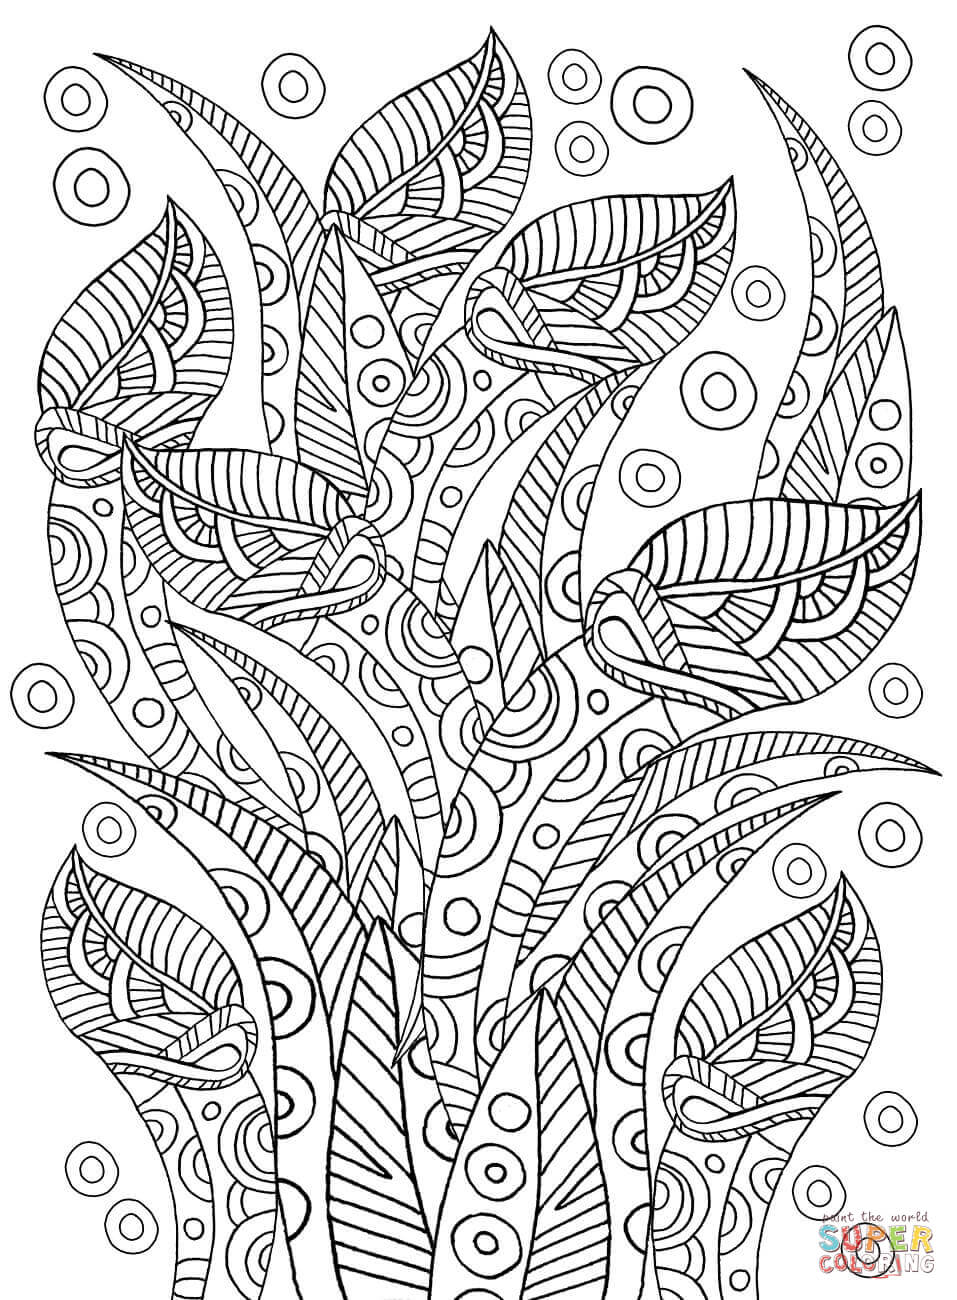 coloring sheets patterns floral pattern coloring page free printable coloring pages sheets patterns coloring